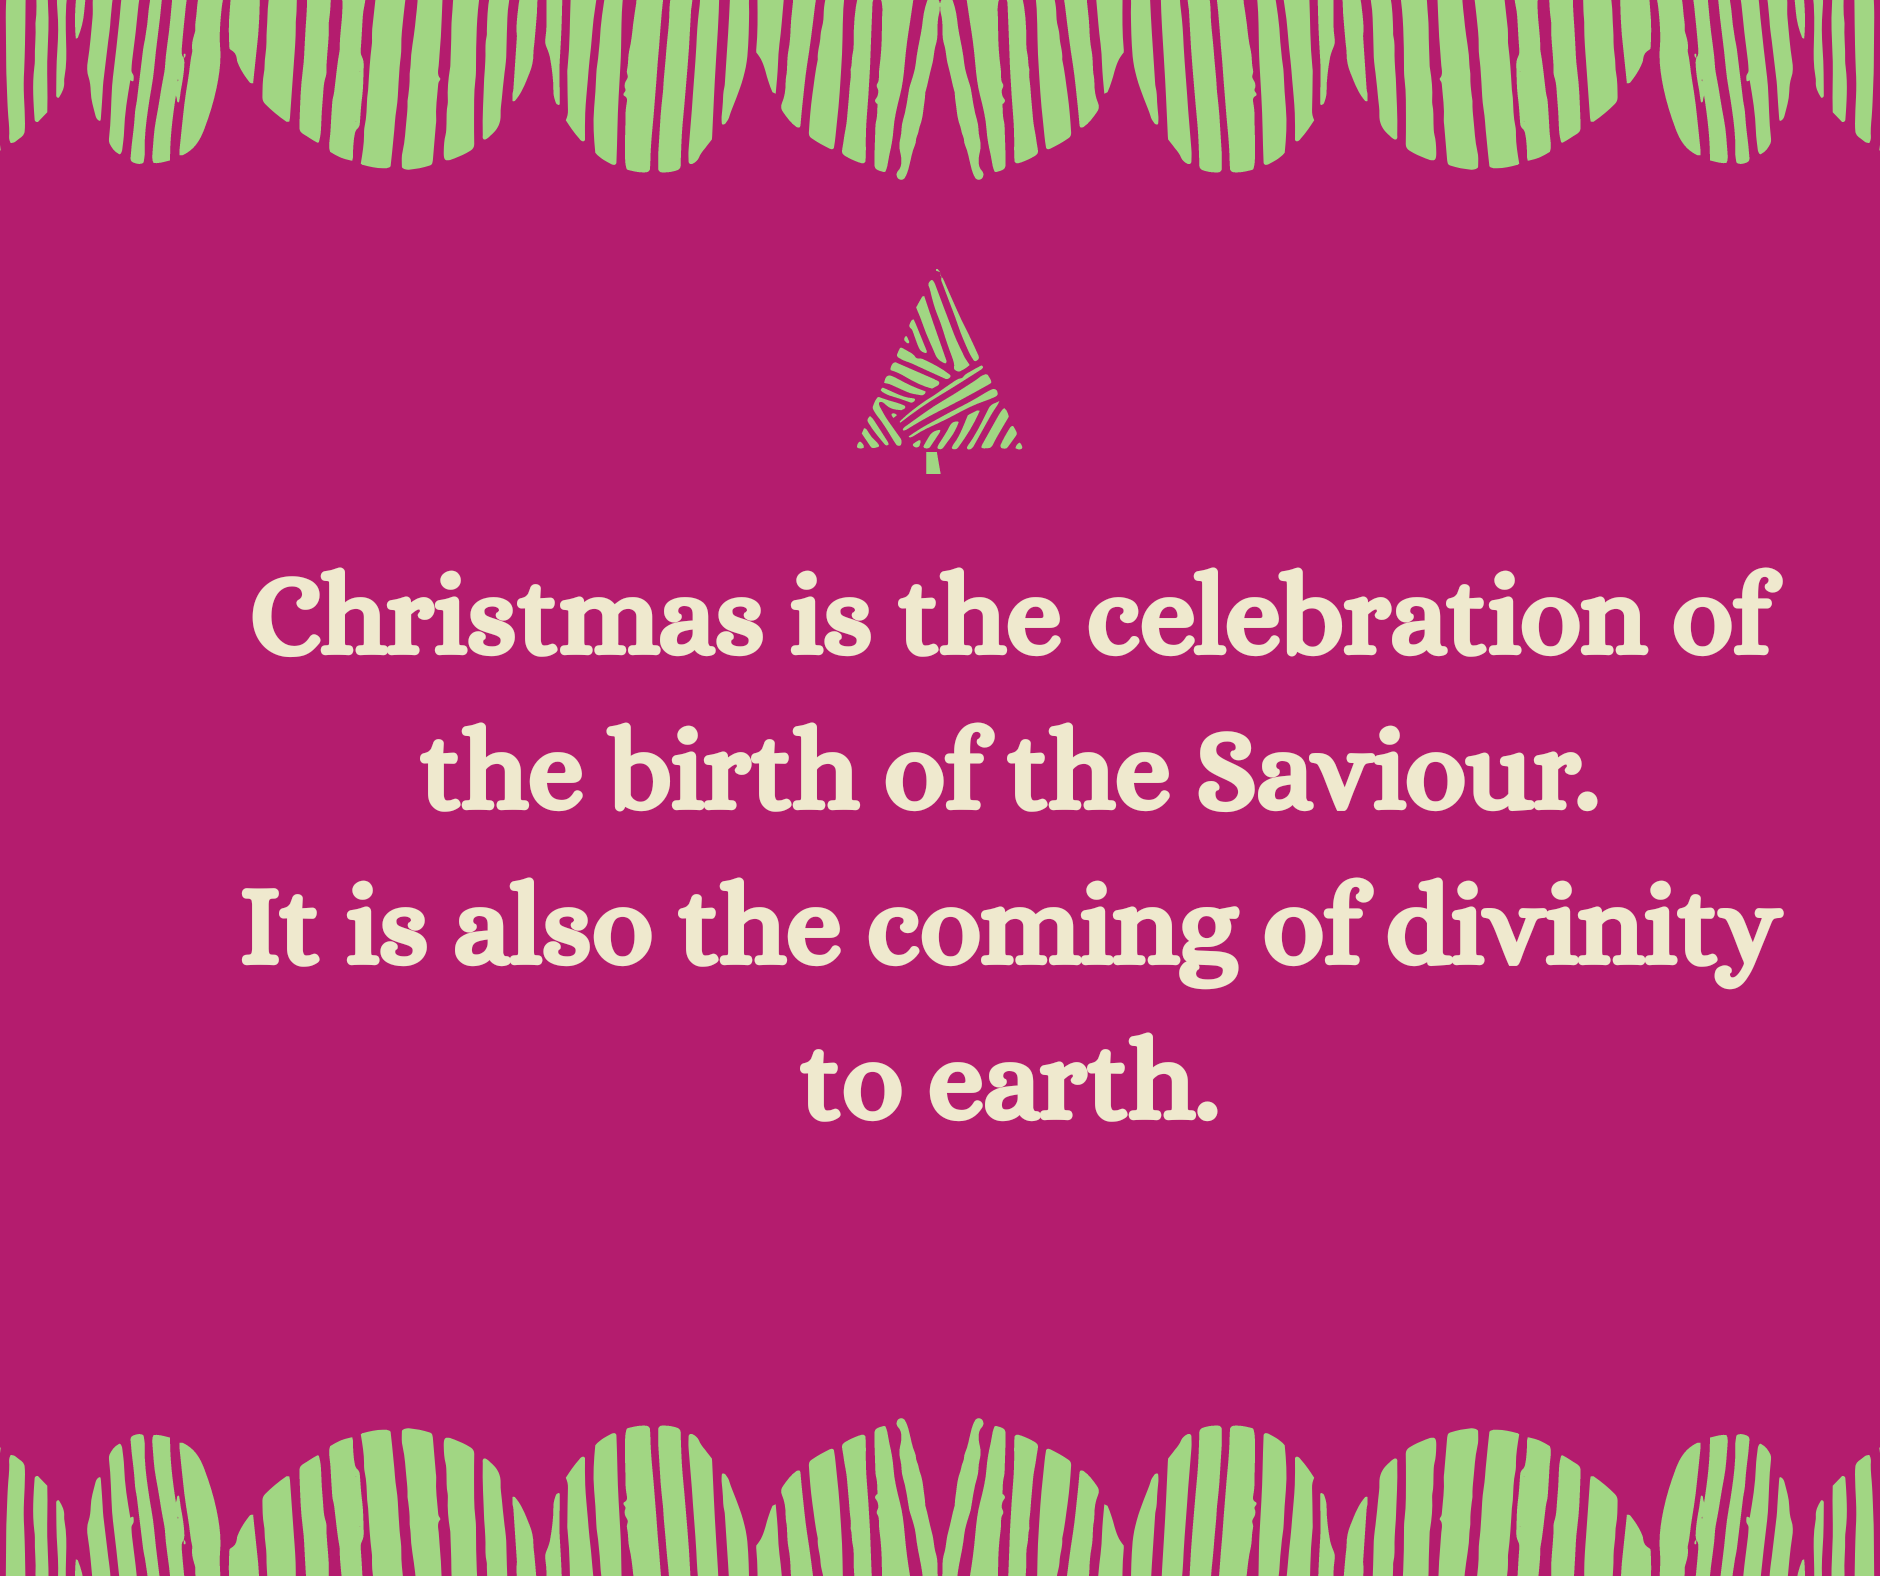 The incarnation, the meaning of Christmas.